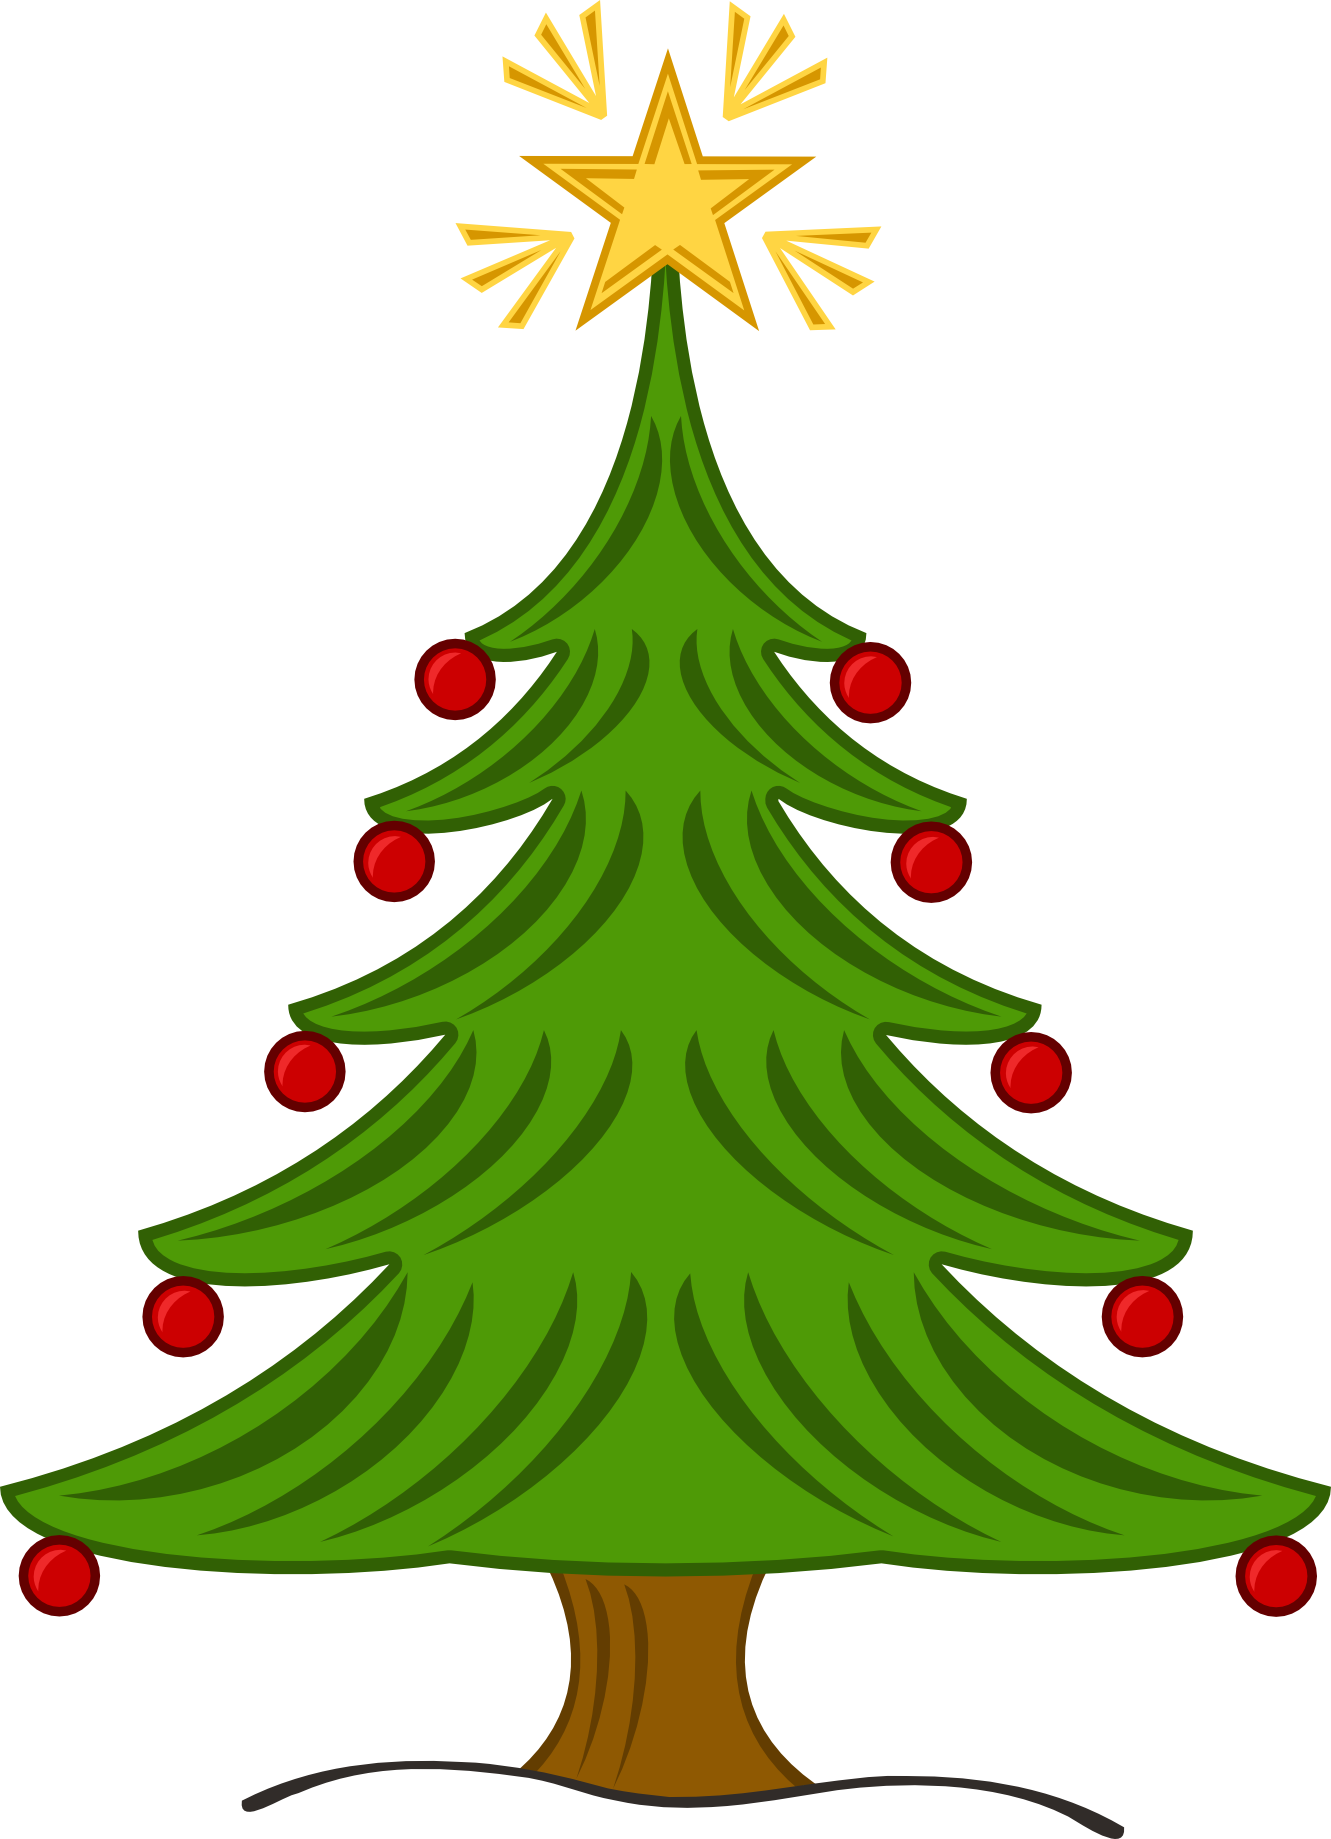 Vintage christmas tree clipart clip free Christmas tree clip art | Clipart Panda - Free Clipart Images clip free